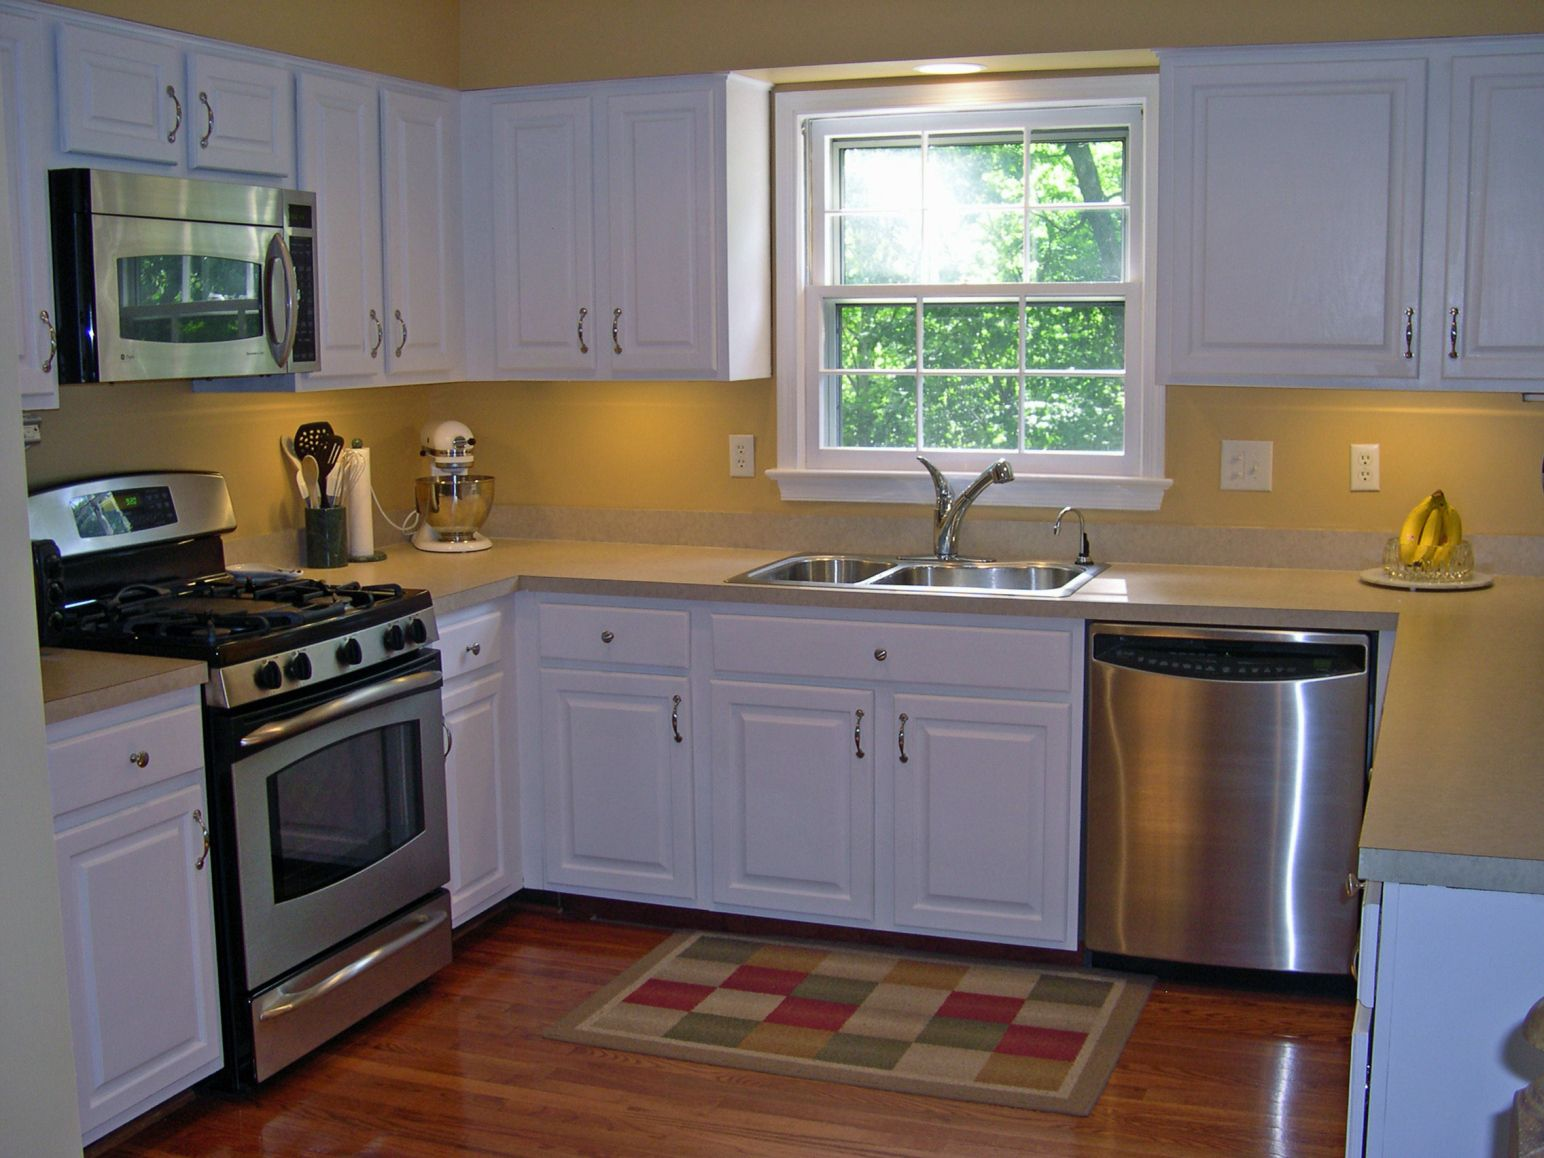 High Quality 100+ Affordable Kitchen Remodel Ideas   Rustic Kitchen Decorating Ideas  Check More At Http: